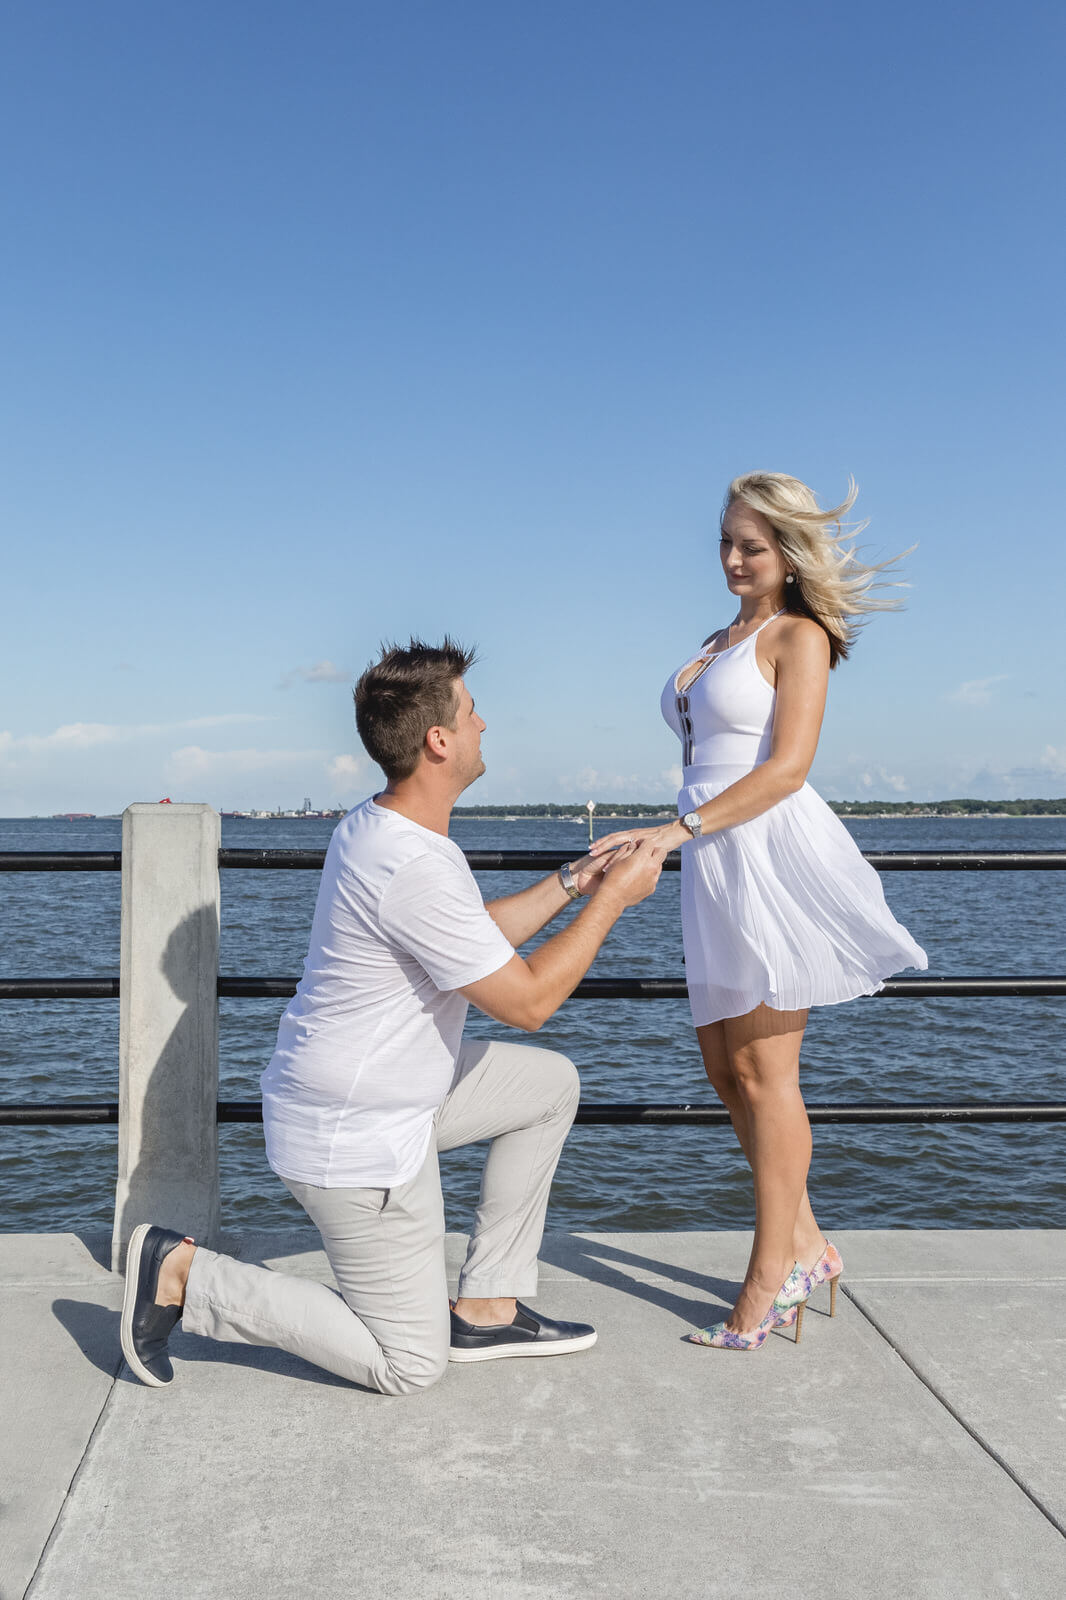 engagement photo Charleston the moment of proposal near photo they both wearing white